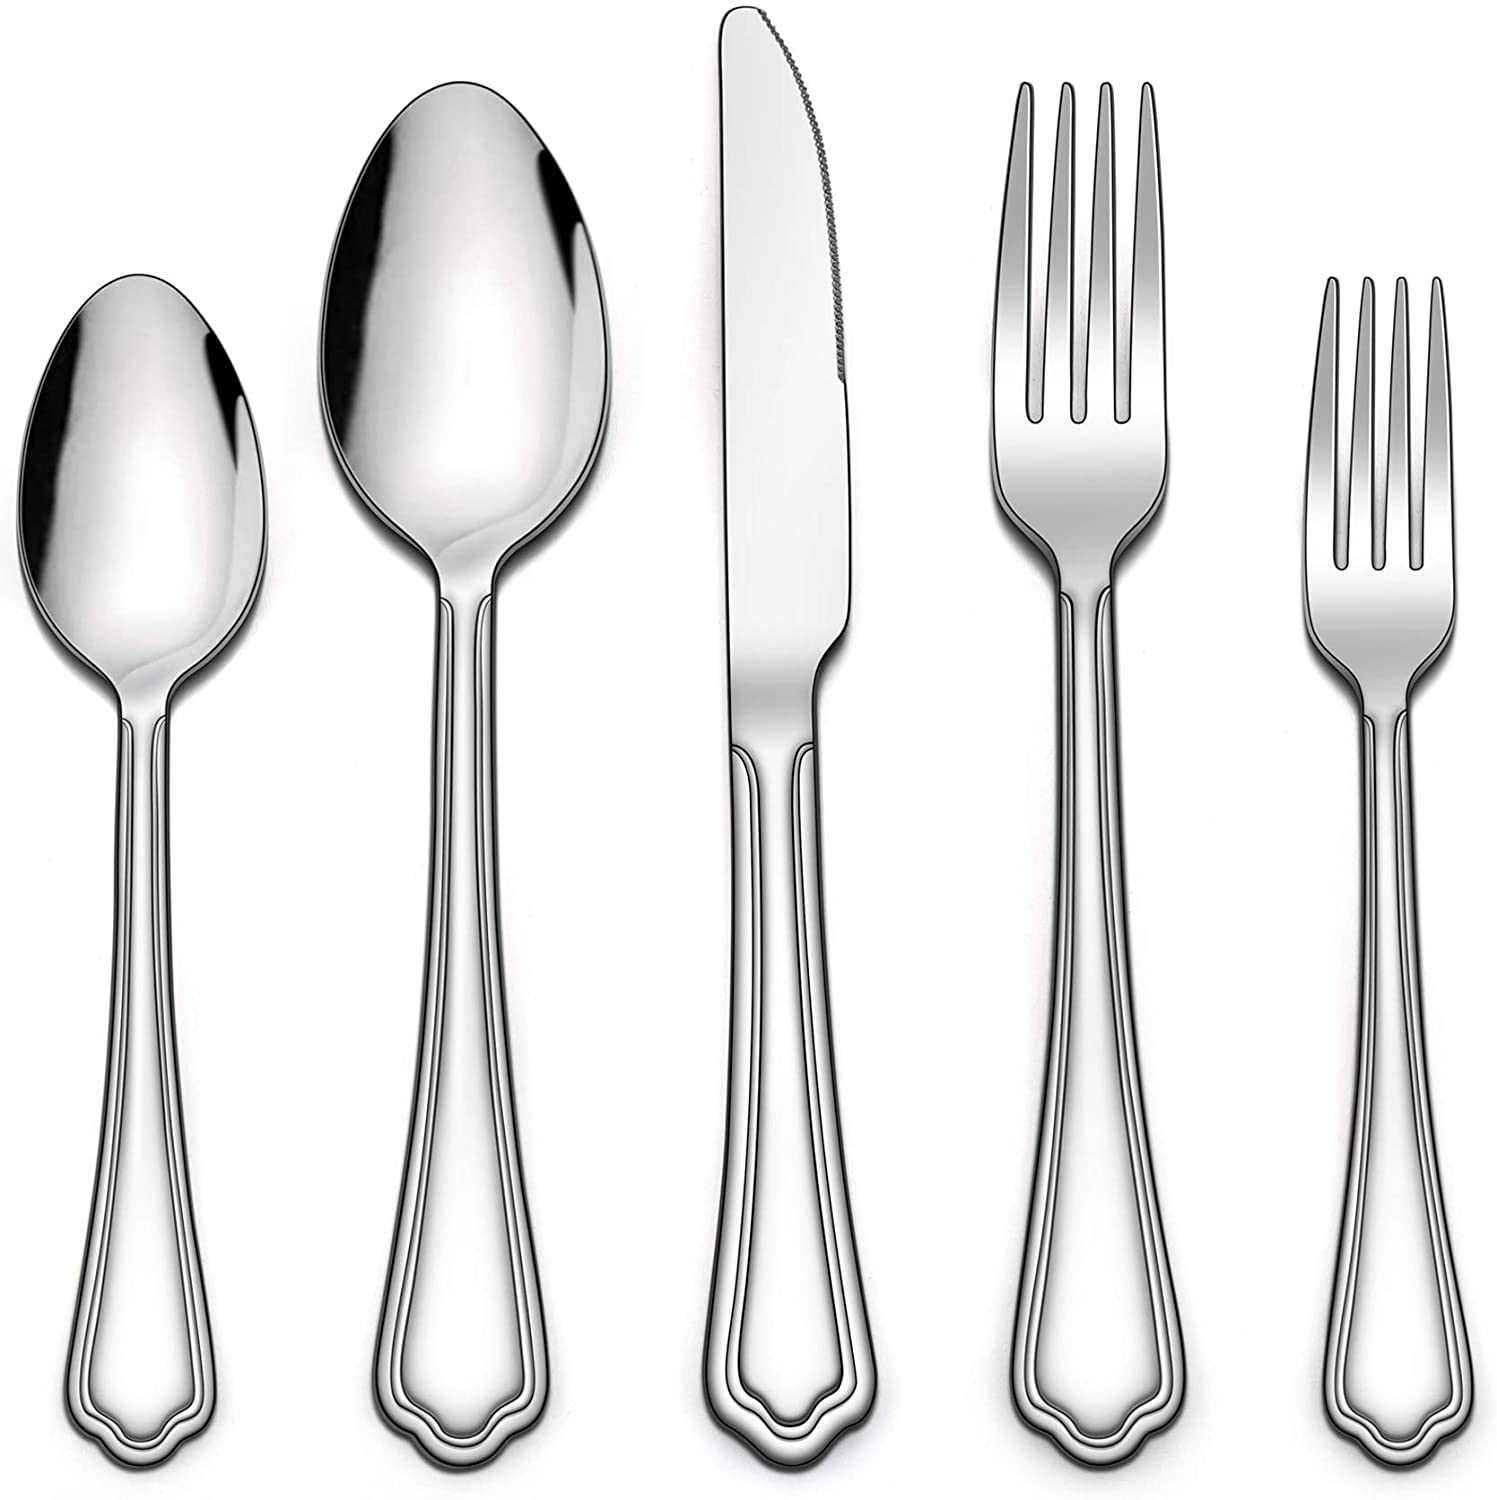 LIANYU 40-Piece Silverware Set, Stainless Steel Flatware Cutlery Set for 8, Eating Utensils Set with Scalloped Edge, Include Knives Forks Spoons, Dishwasher Safe, Mirror Polished